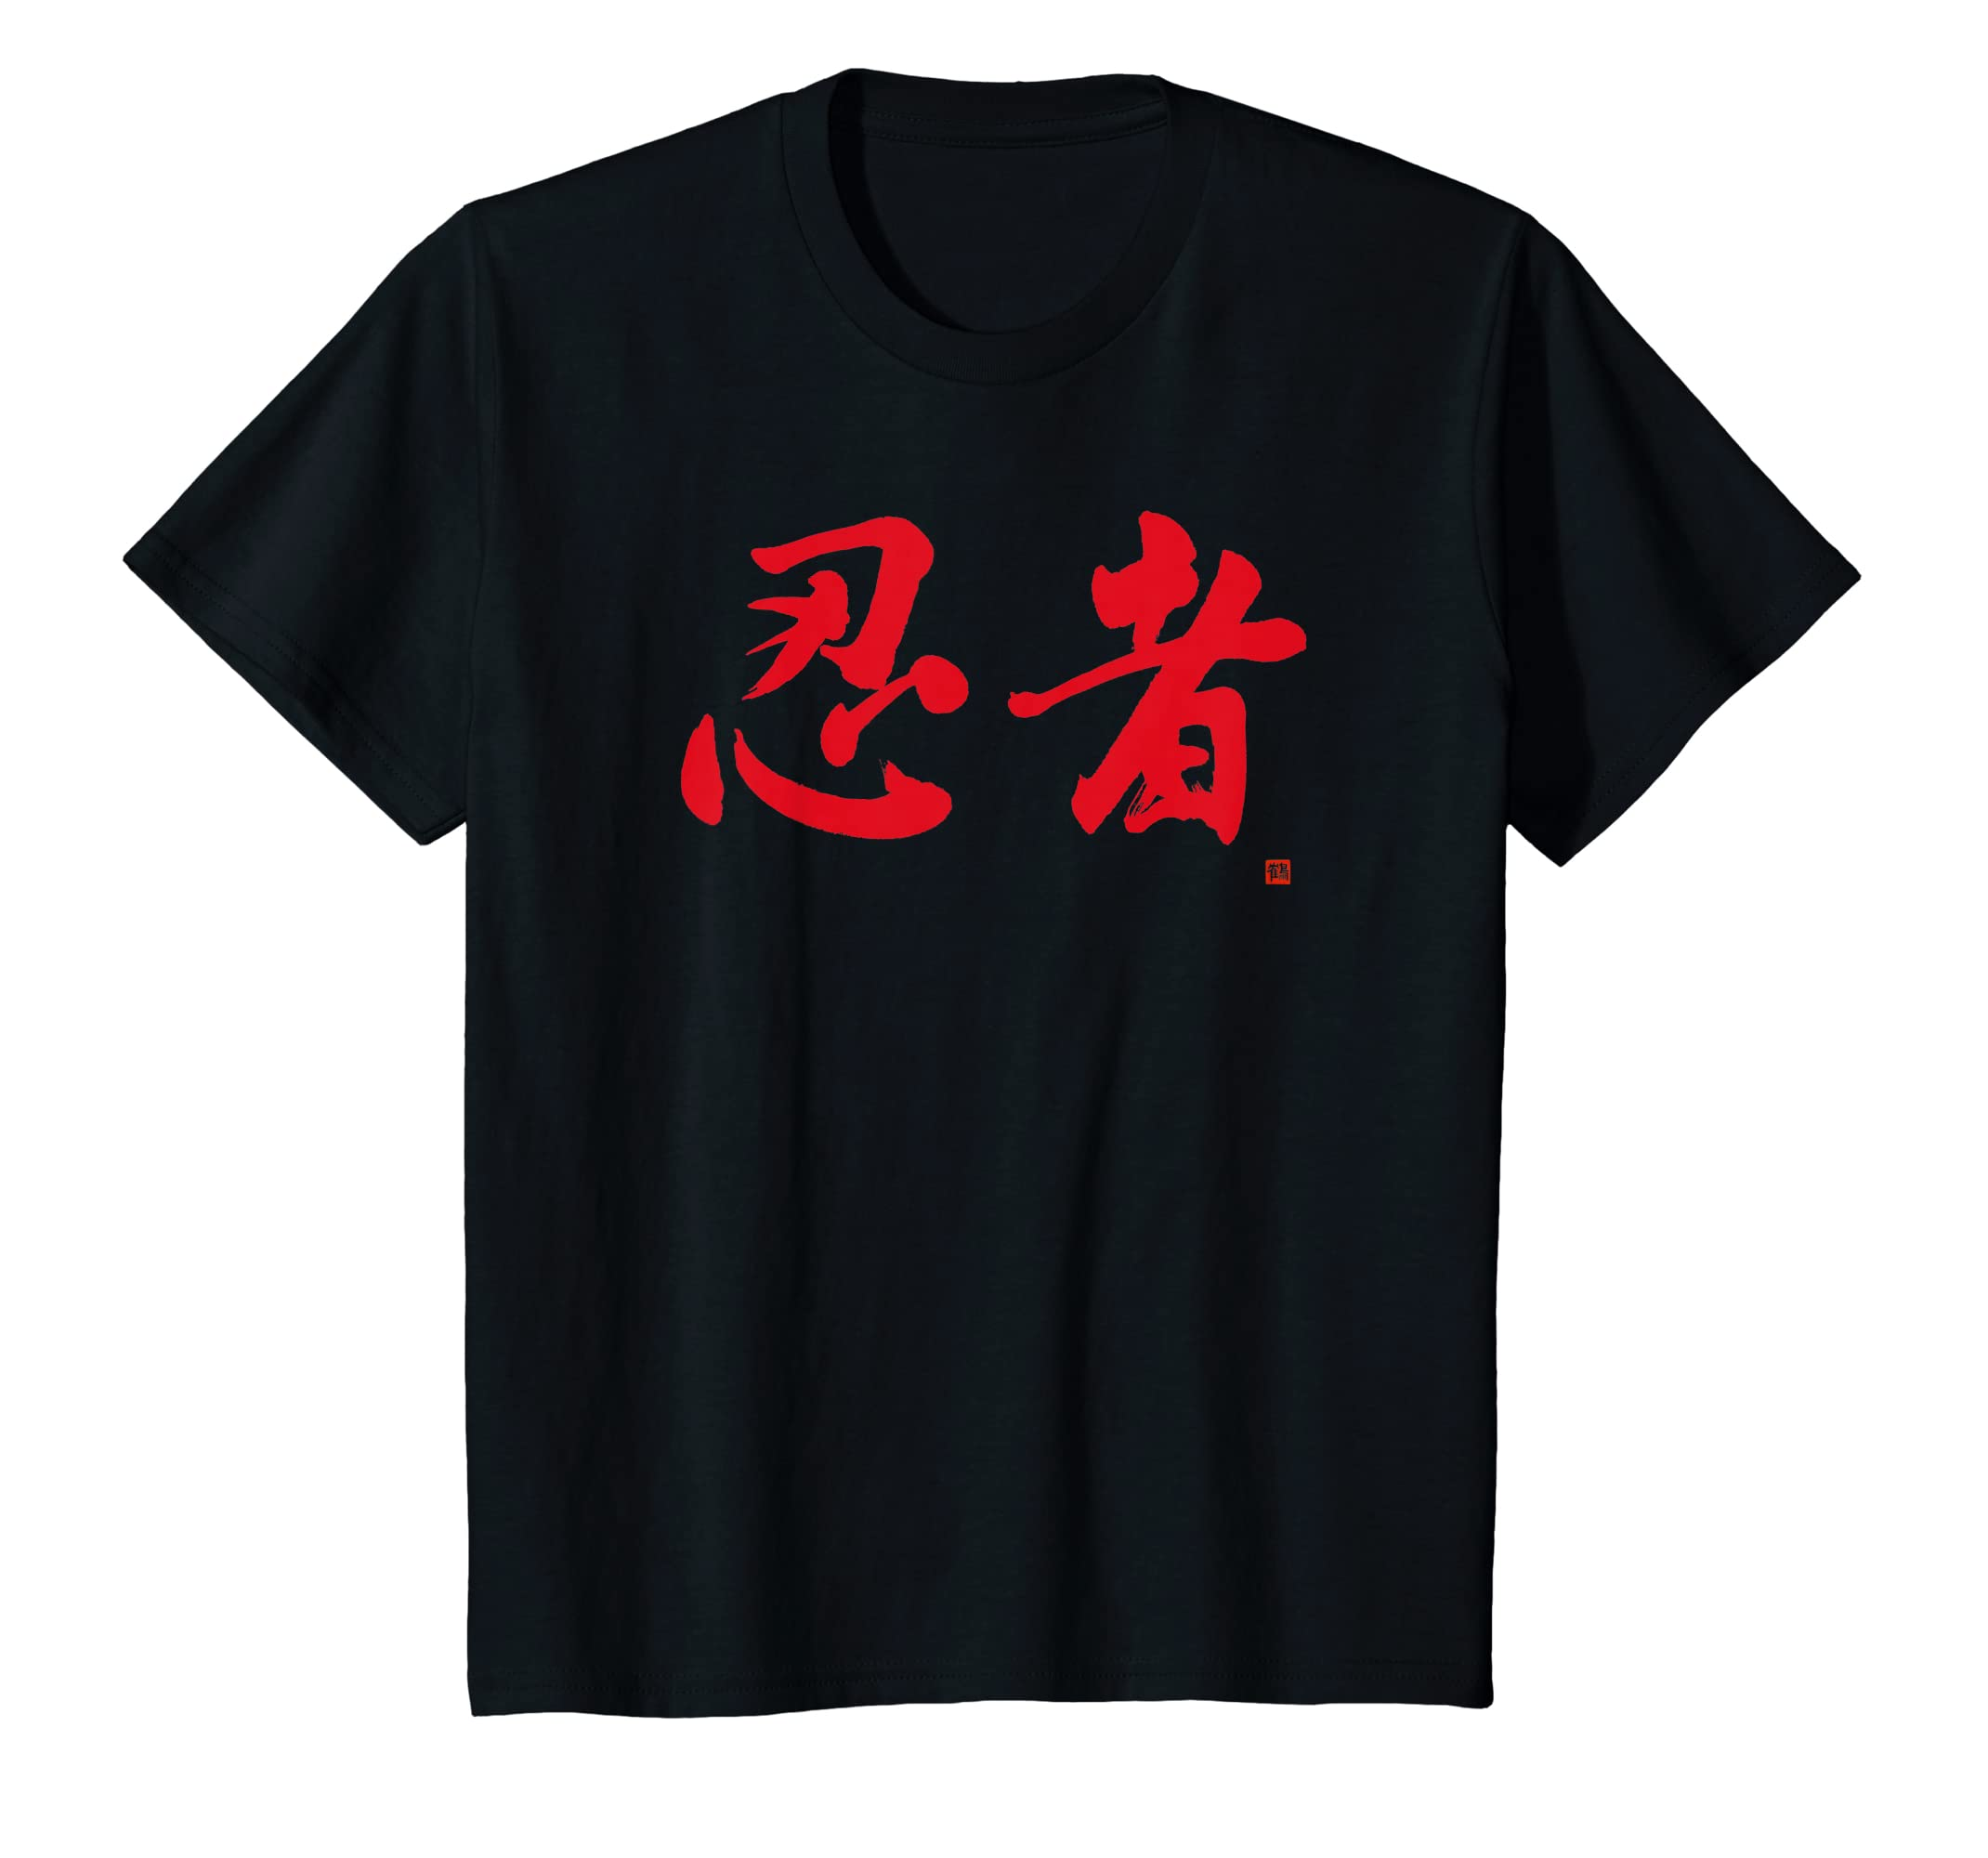 Amazon.com: Ninja T-shirt With Original Ninja Kanji ...